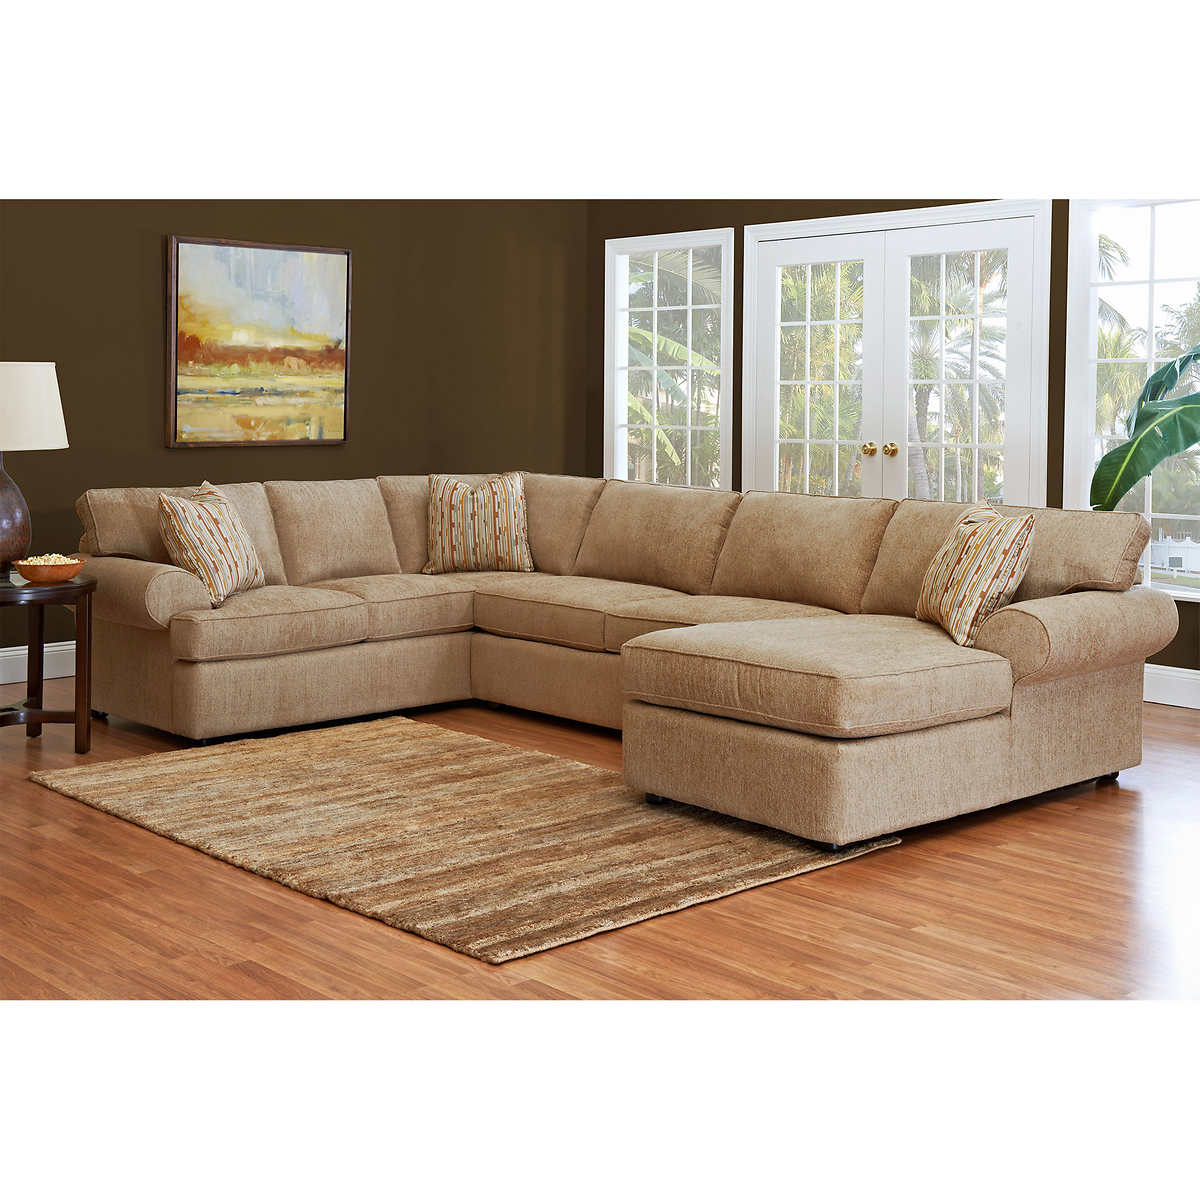 Modular Sectional Sofa Costco